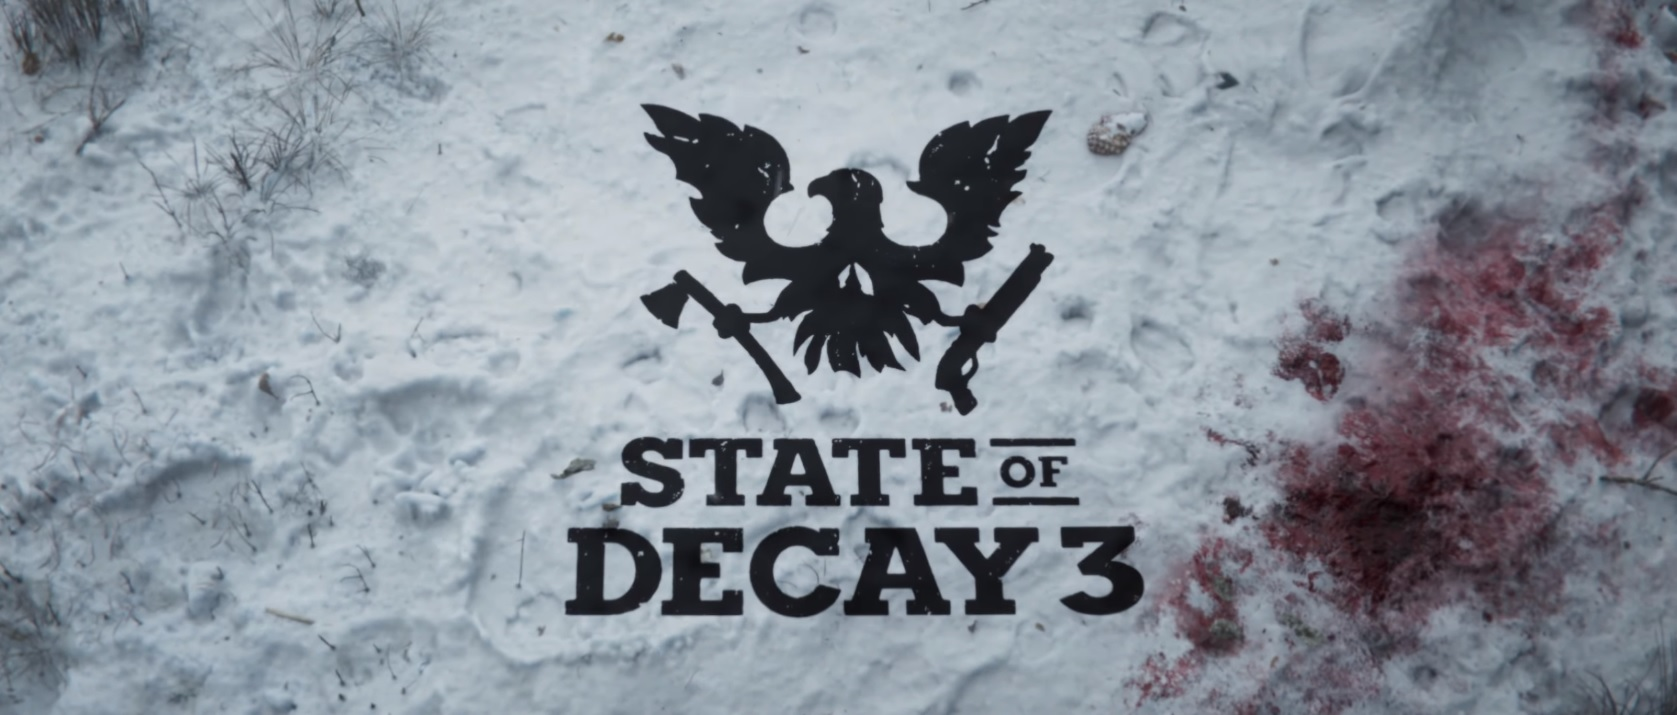 state-of-decay-3